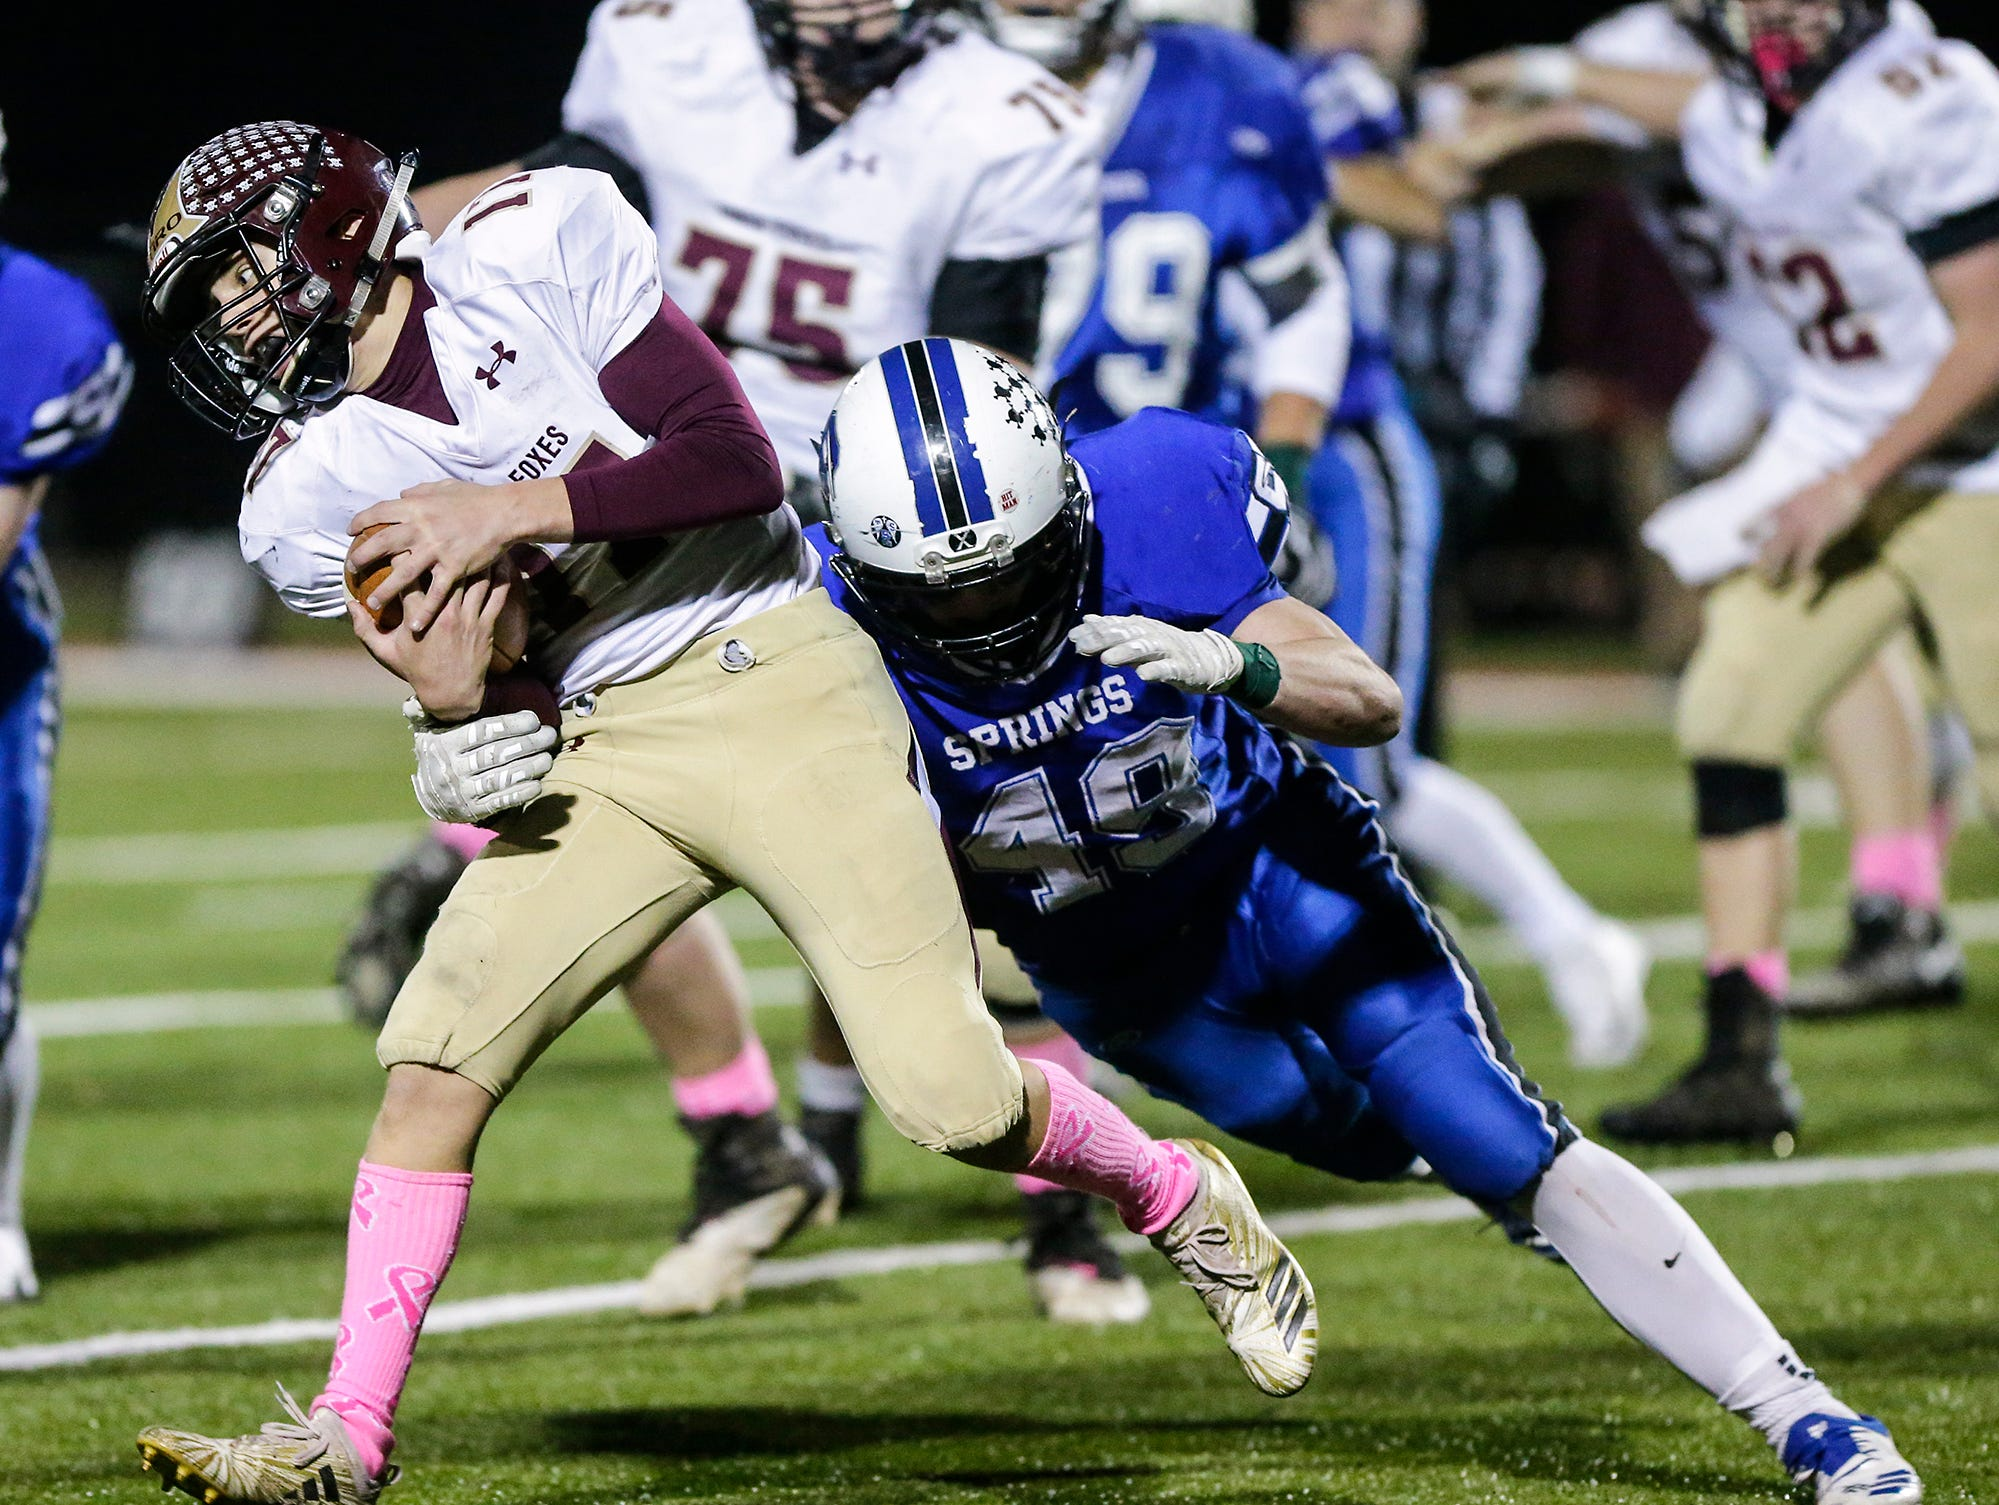 St. Mary's Springs Academy football's Jake Hoch tackles Omro High School's Ben Wellhoefer Friday, October 26, 2018 during their WIAA division five, level 2 playoff game played in Lomira, Wisconsin. Springs won the match-up 33-20. Doug Raflik/USA TODAY NETWORK-Wisconsin